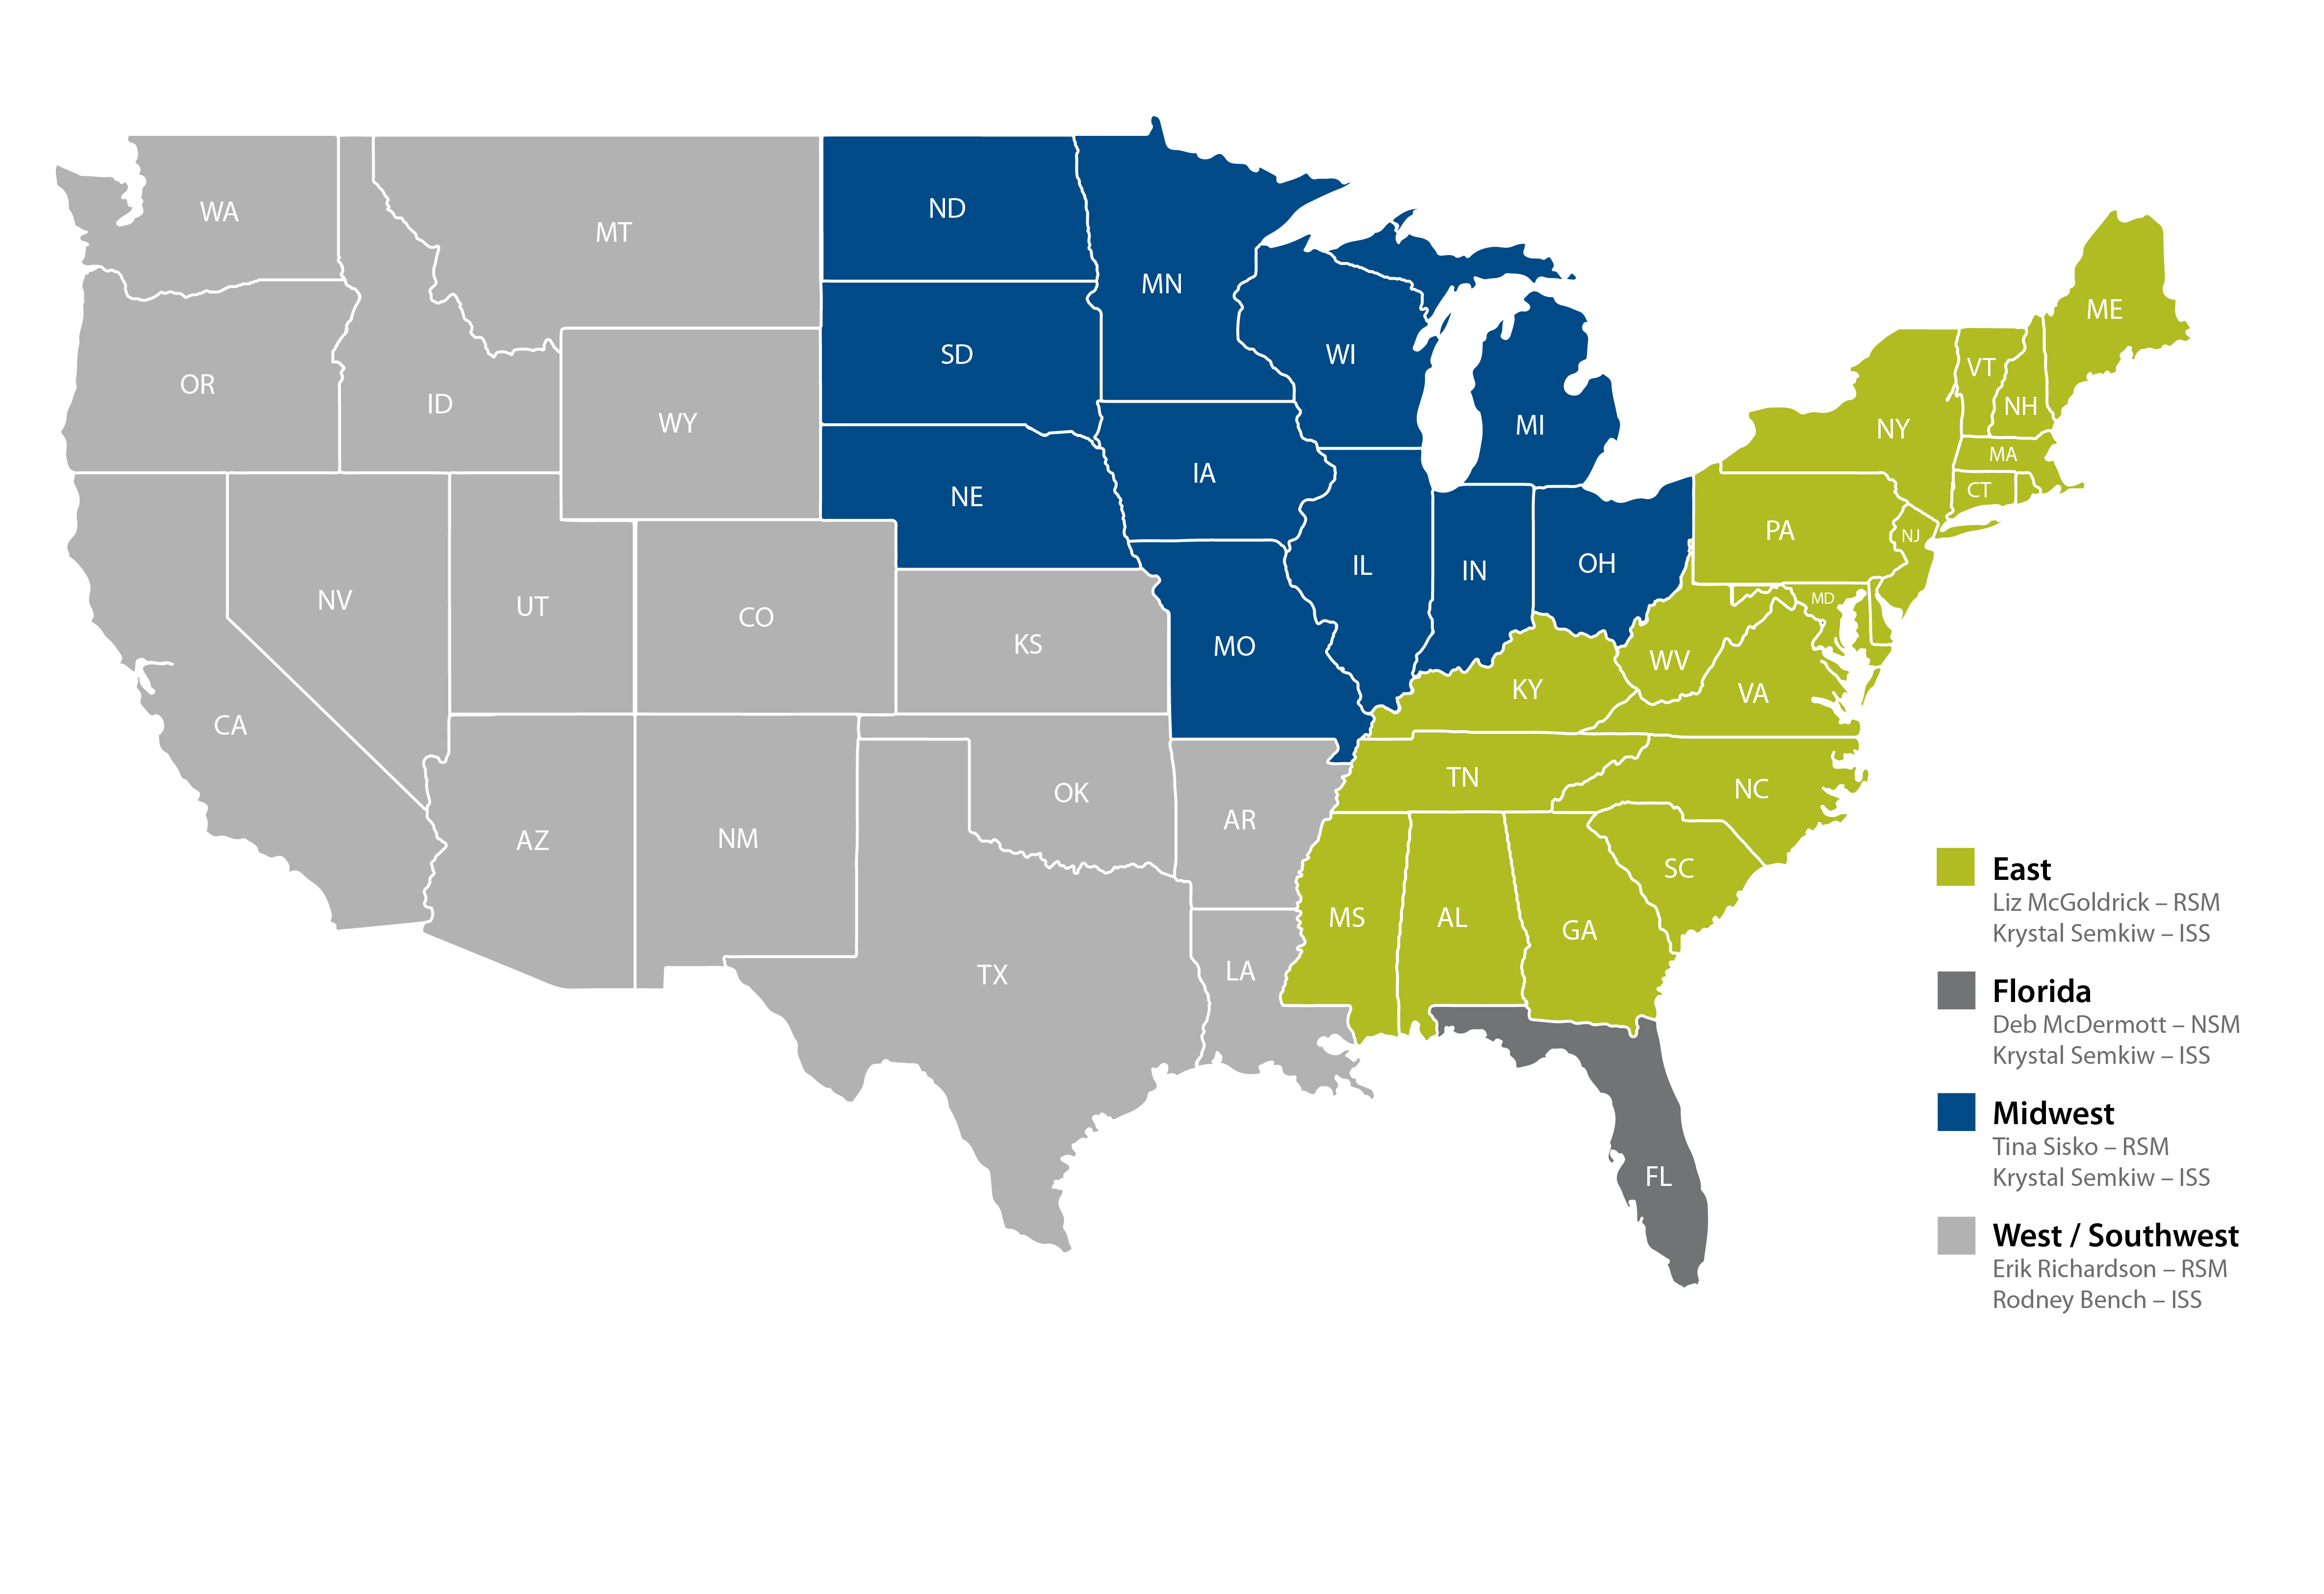 A map of the United States showing the regions covered by each sales representative.